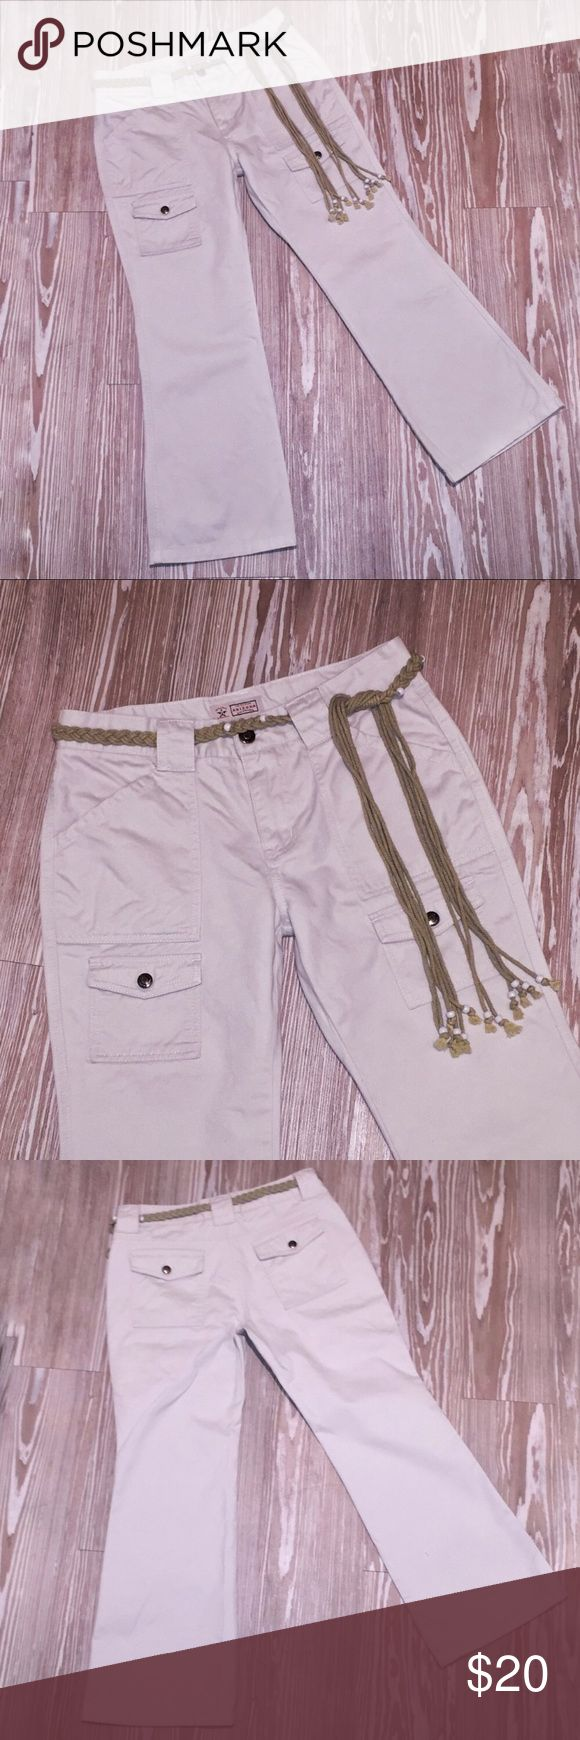 Arizona Jeans 10-1/2+ Khaki Flare Pants w/ Belt Gently used Arizona Jean company khaki Capri in size 10 1/2+ for juniors. Flared bottom.Flap rear pockets. Two front flap pockets. Belt included. Belt loops intact. No holes in pocket. Buttons and zippers work. Minimal wear. Made in Hong Kong 100% cotton Waist 15 inches Hips 19 inches Rise 9 inches  Out seam 34 inches Inseam 25 inches Hem 9-1/2 inches  AC Arizona Jean Company Pants Boot Cut & Flare